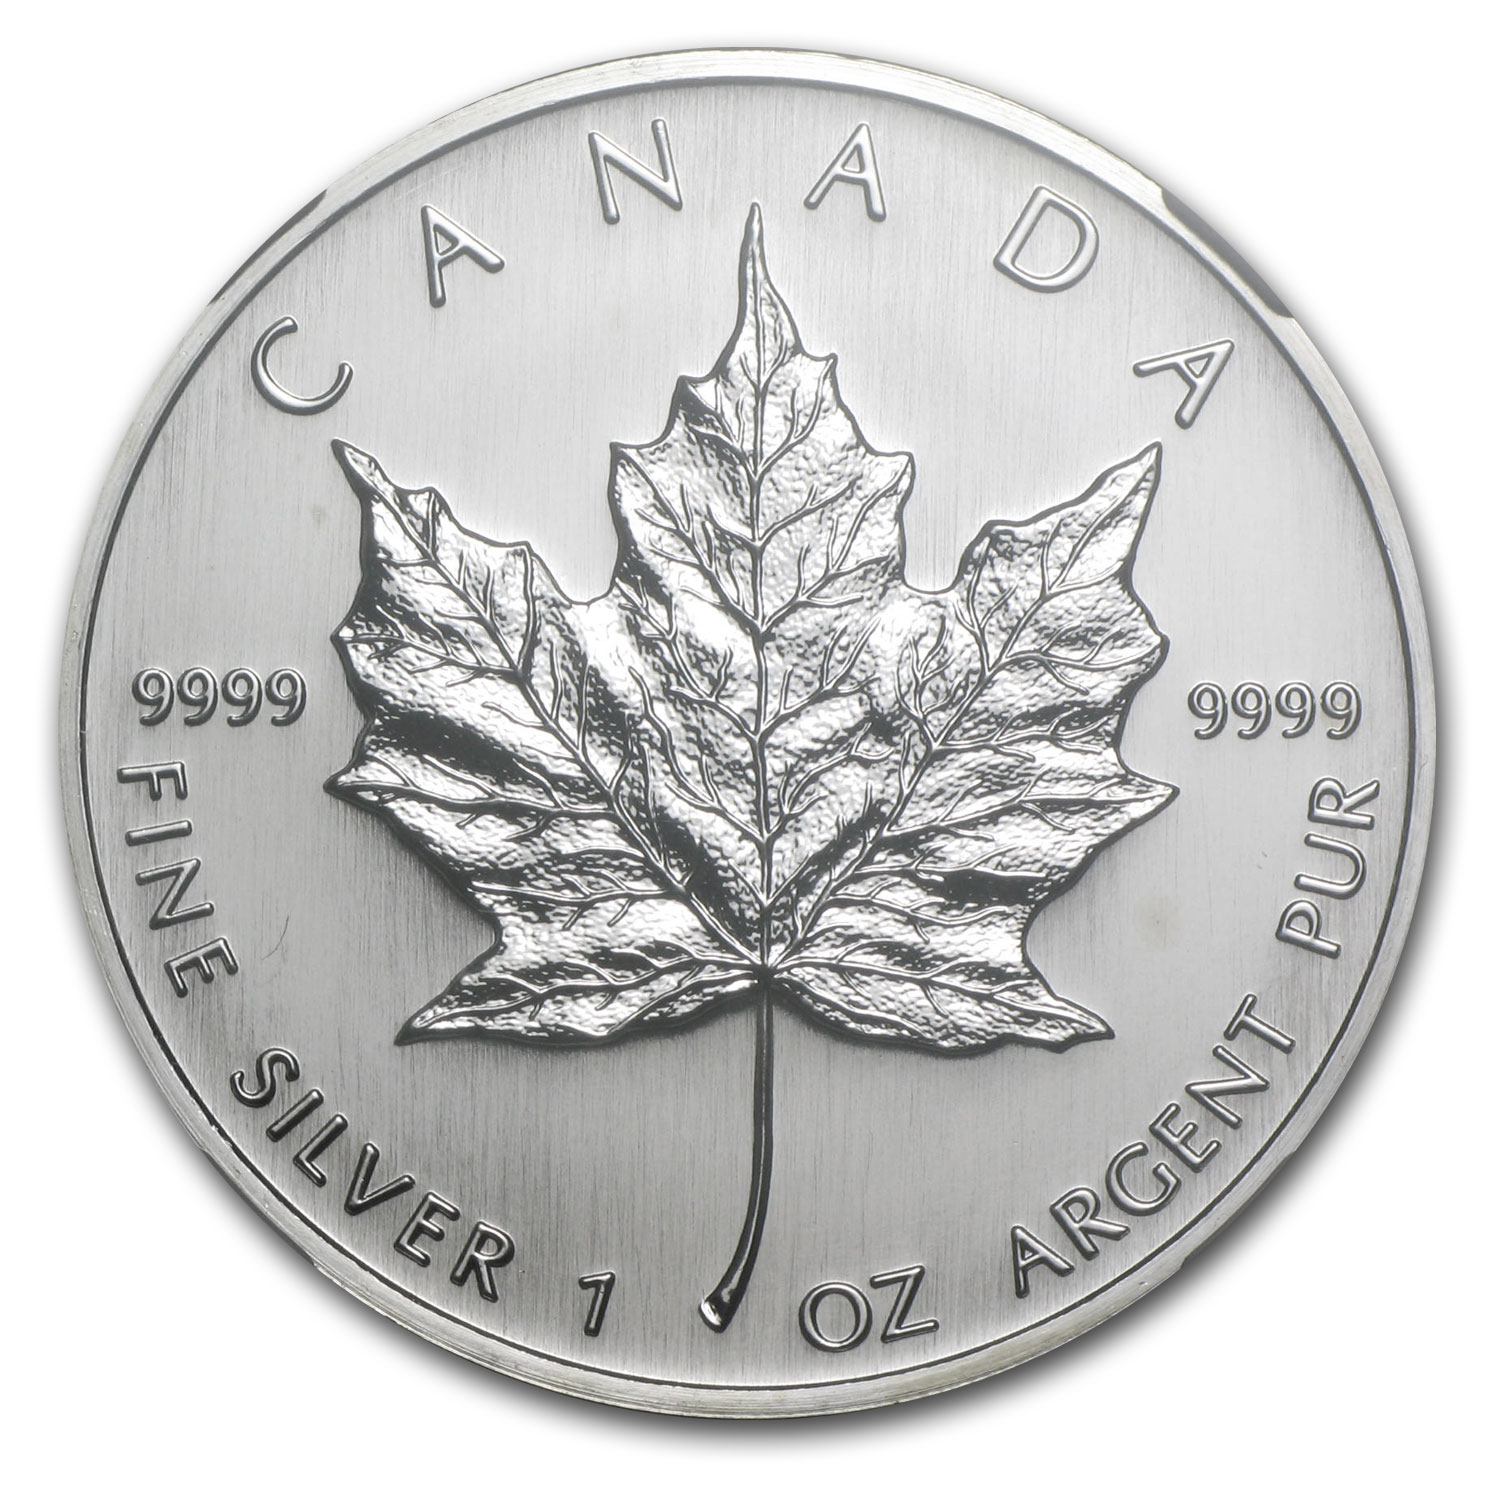 2006 Canada 1 oz Silver Maple Leaf MS-68 NGC